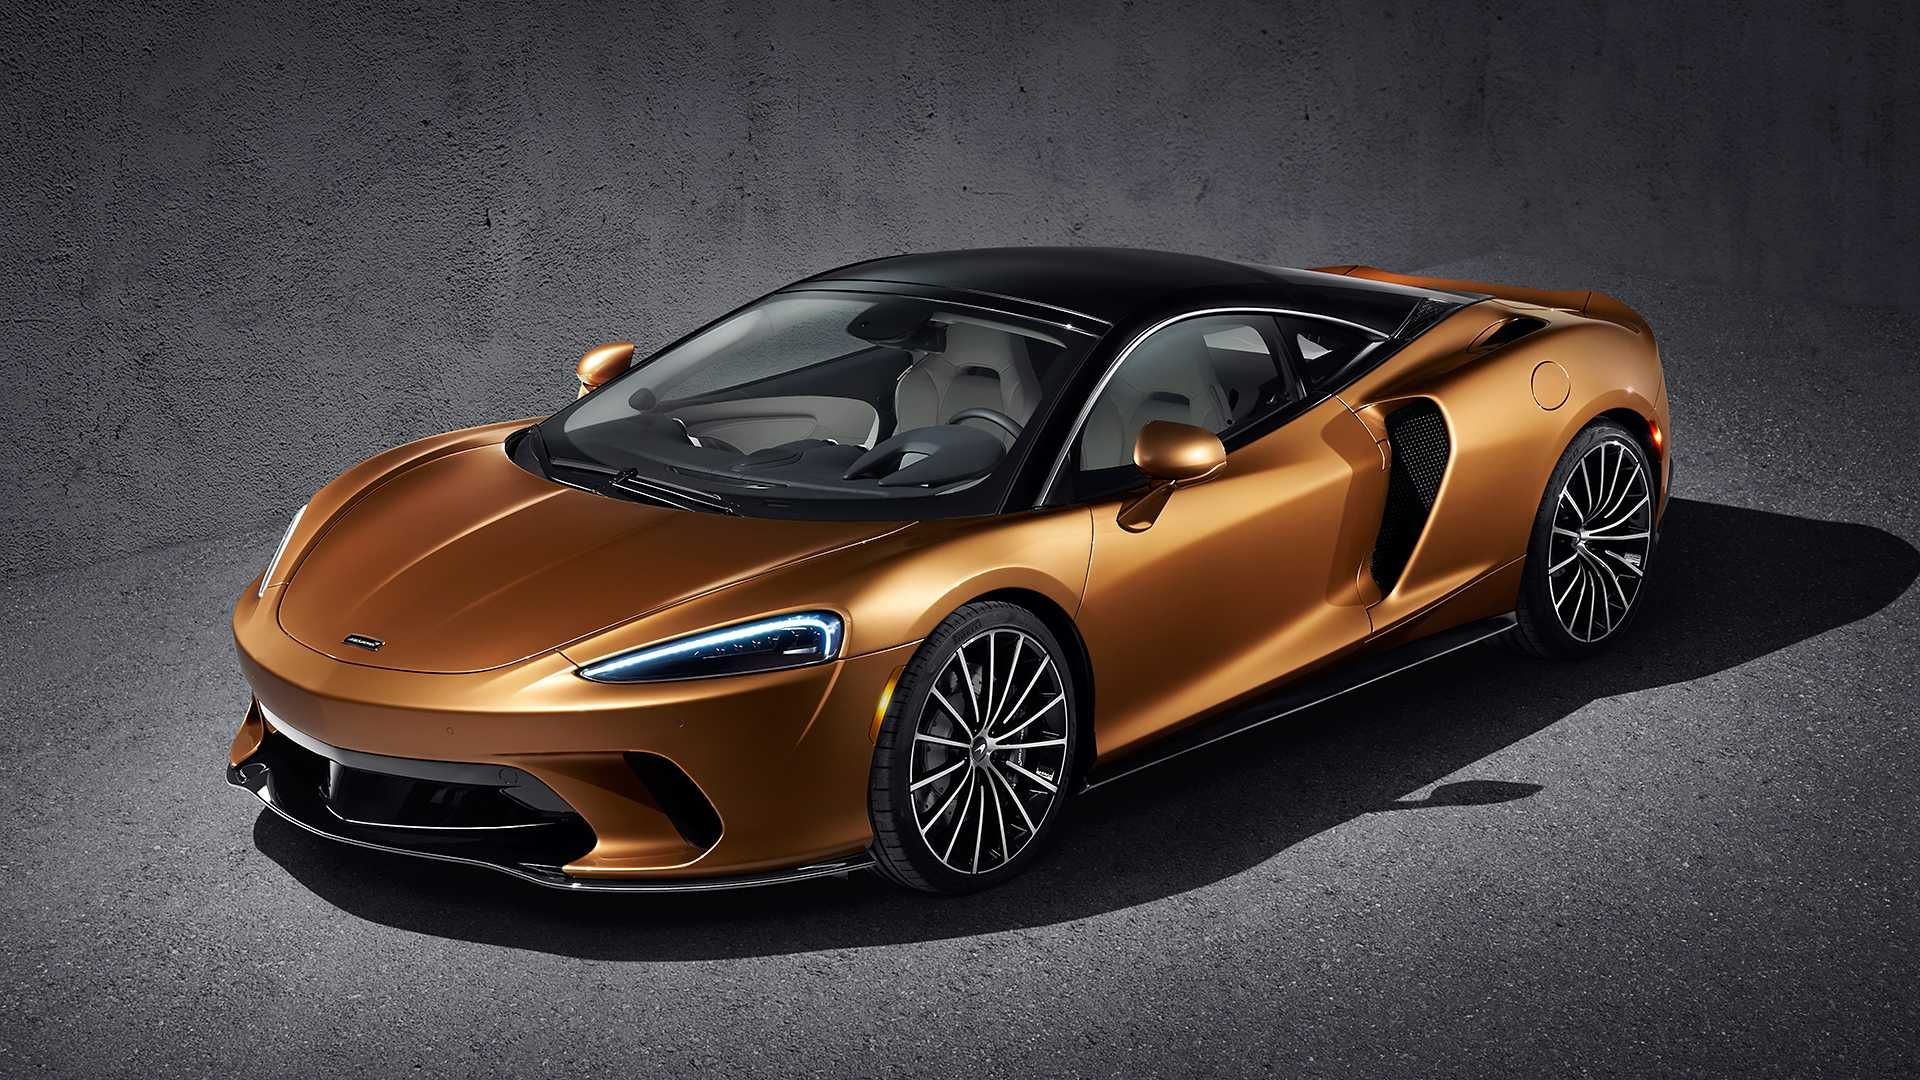 New Mclaren Gt Supercar Gives You Comfort And Speed Super Cars New Mclaren Mclaren